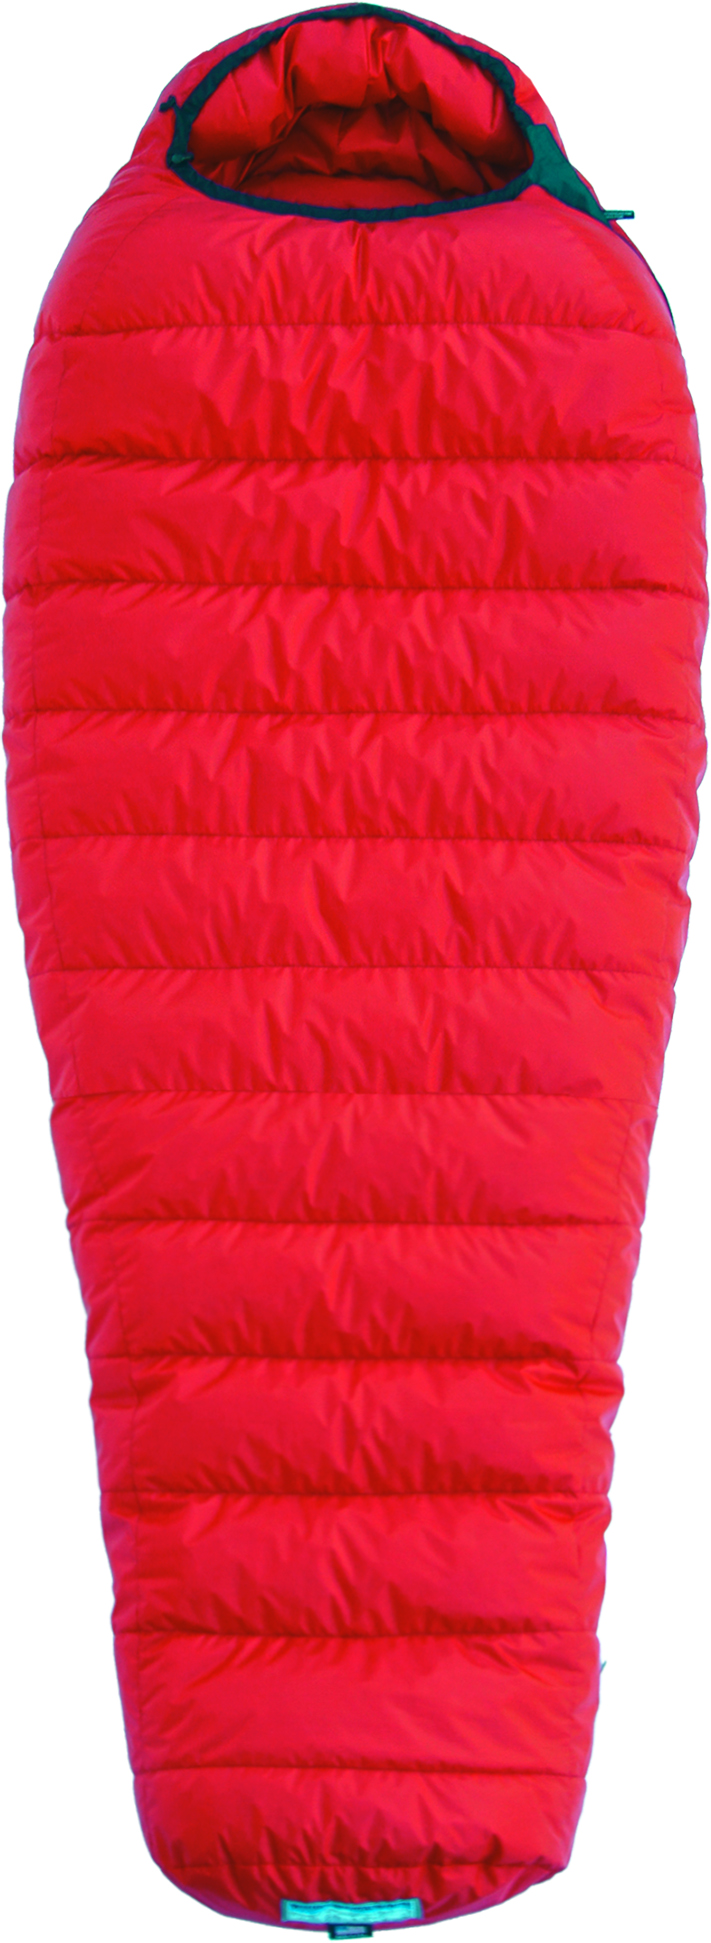 new arrivals e3448 64348 Western Mountaineering Apache Gore WindStopper -9C Down Sleeping Bag -  Unisex